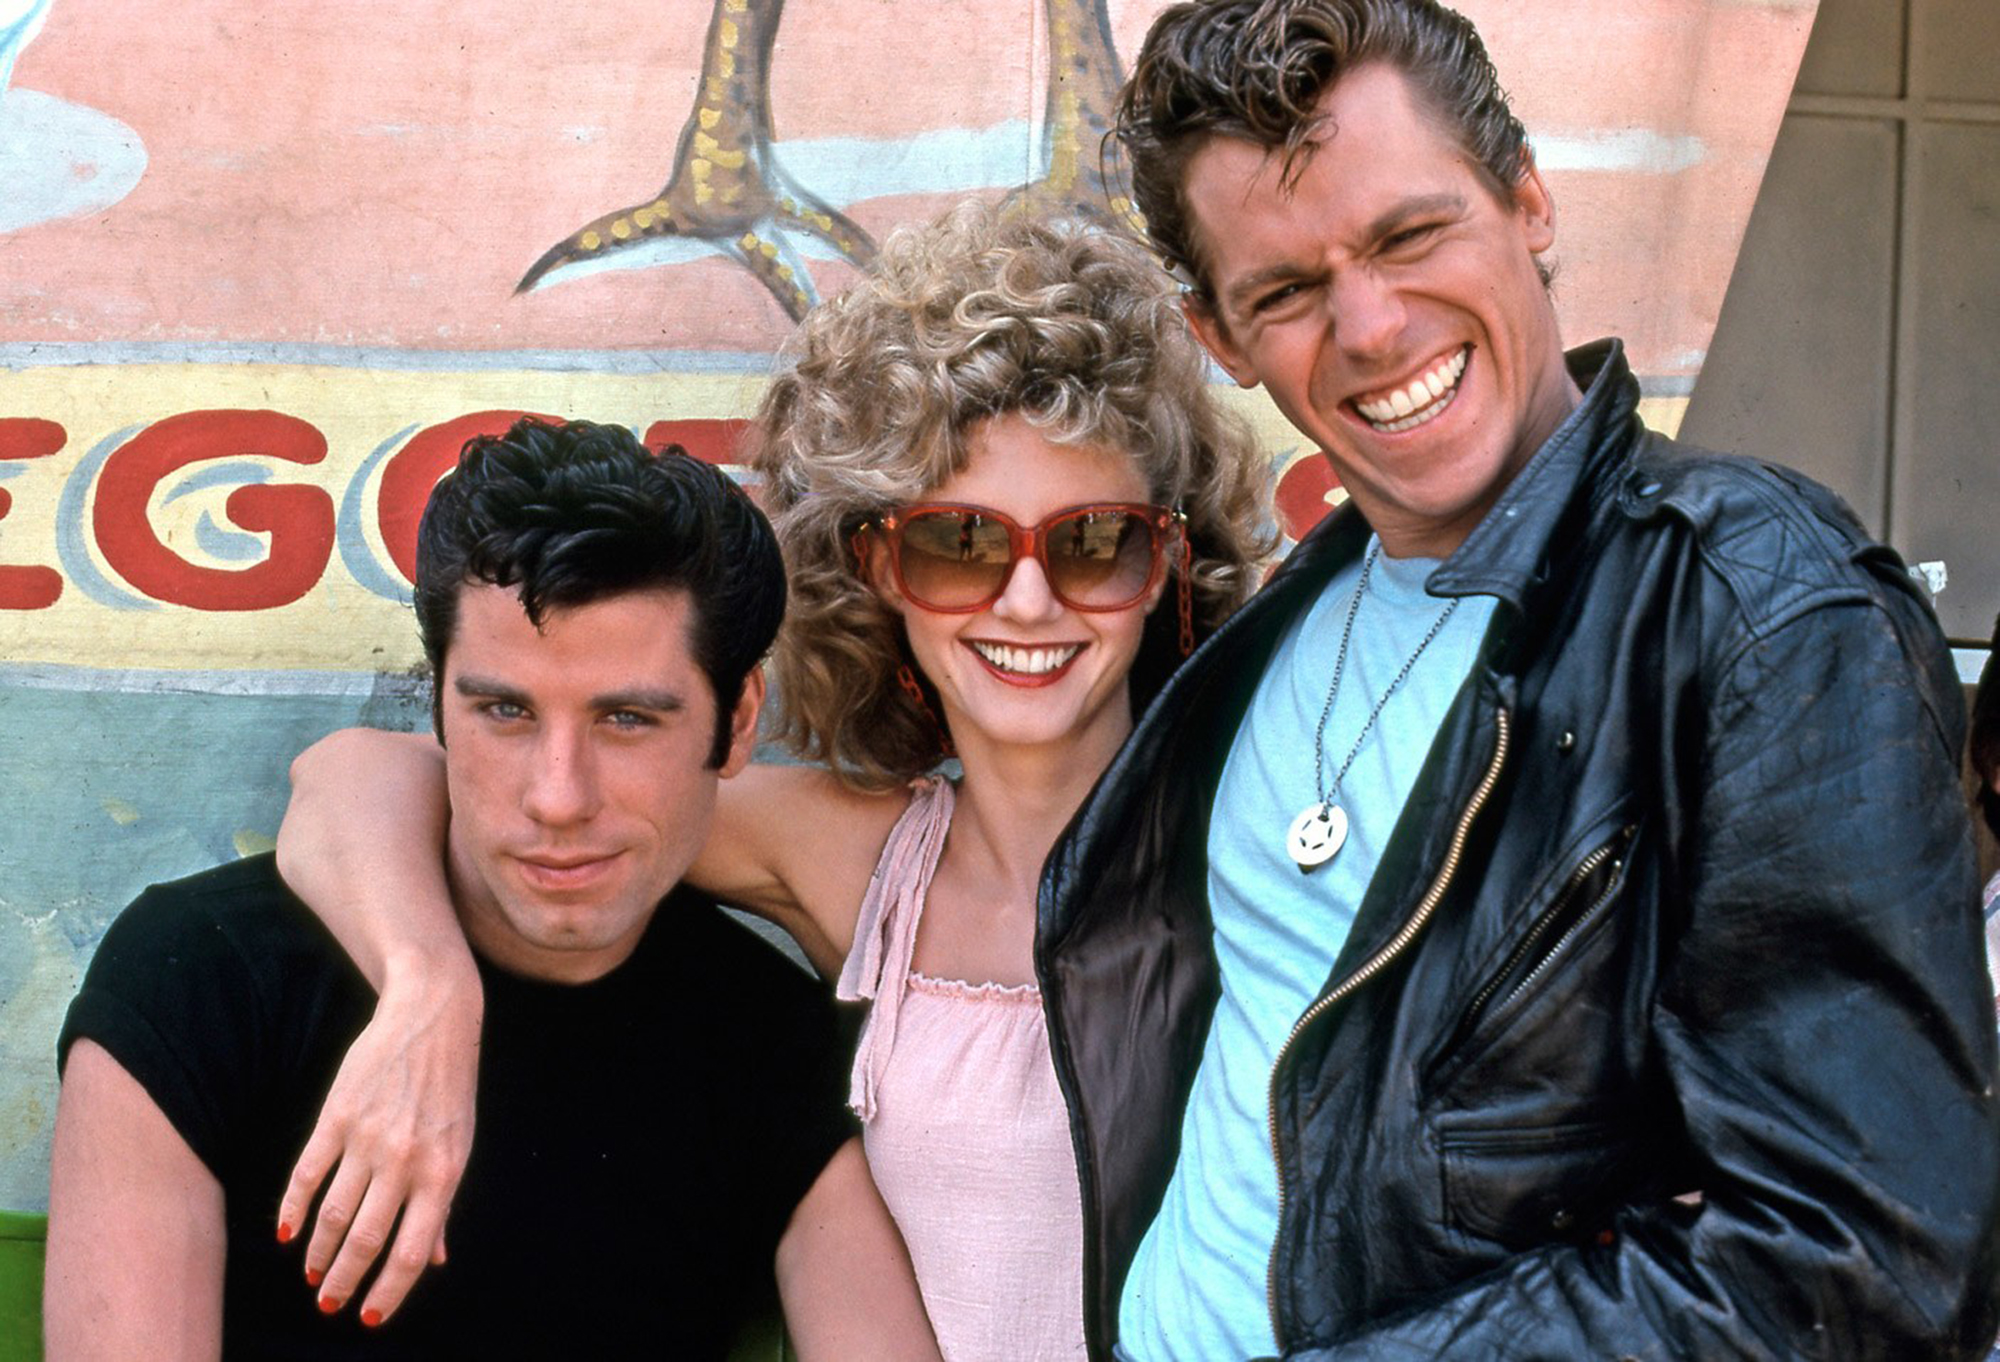 'Grease' BTS photographed by Dave Friedman (1978) - Image courtesy of Randal Kleiser for Homesick magazine Issue #2   www.randalkleiser.com